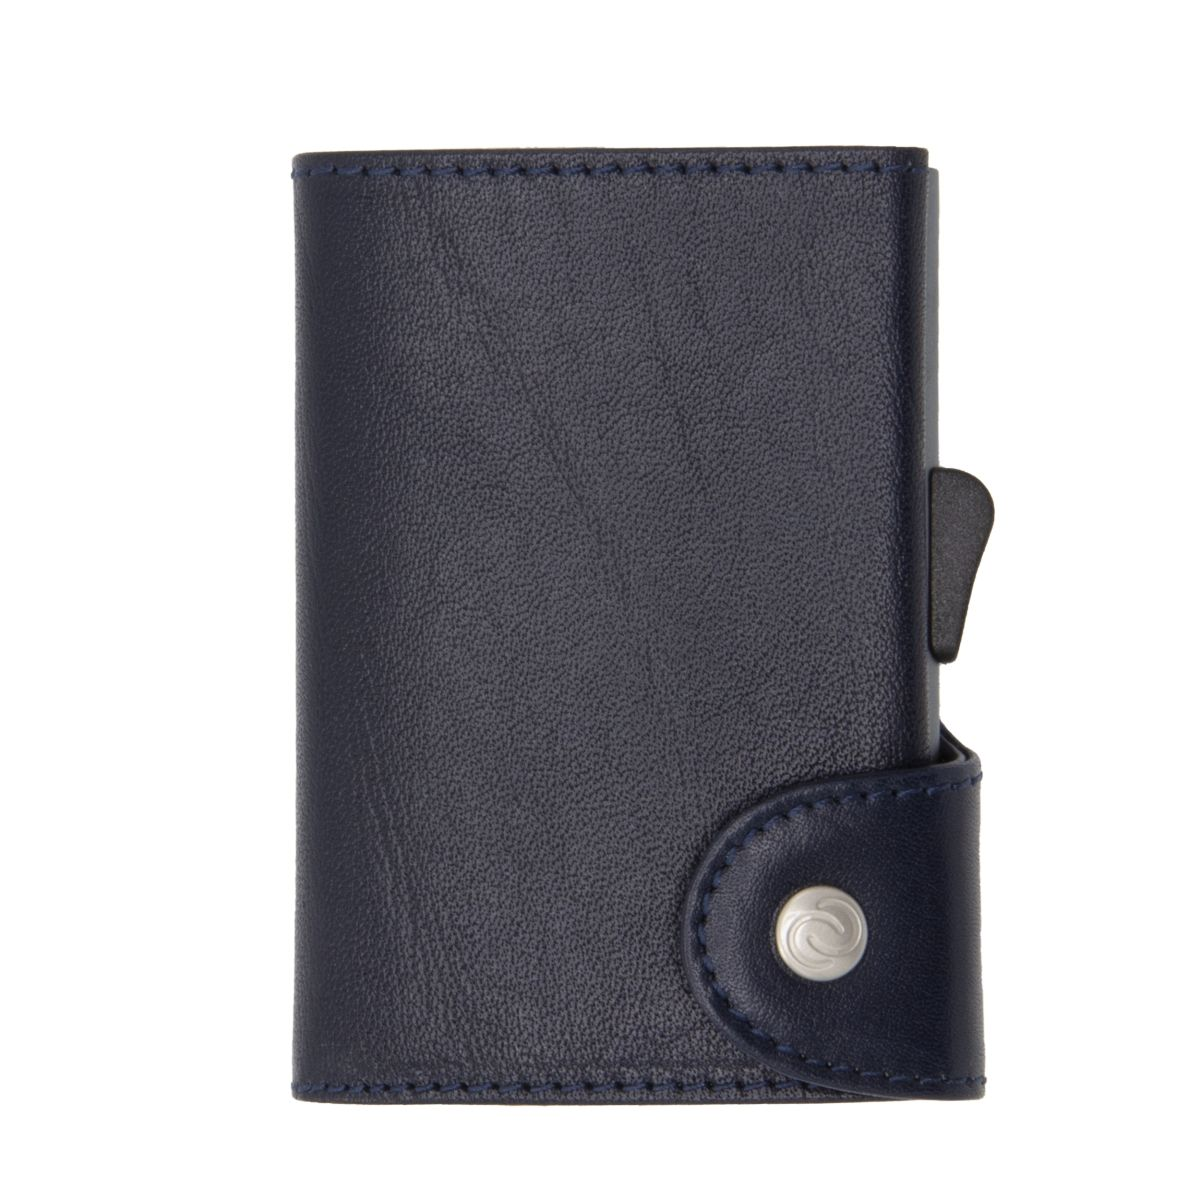 C-Secure Aluminum Card Holder with Genuine Leather - Blue Montana